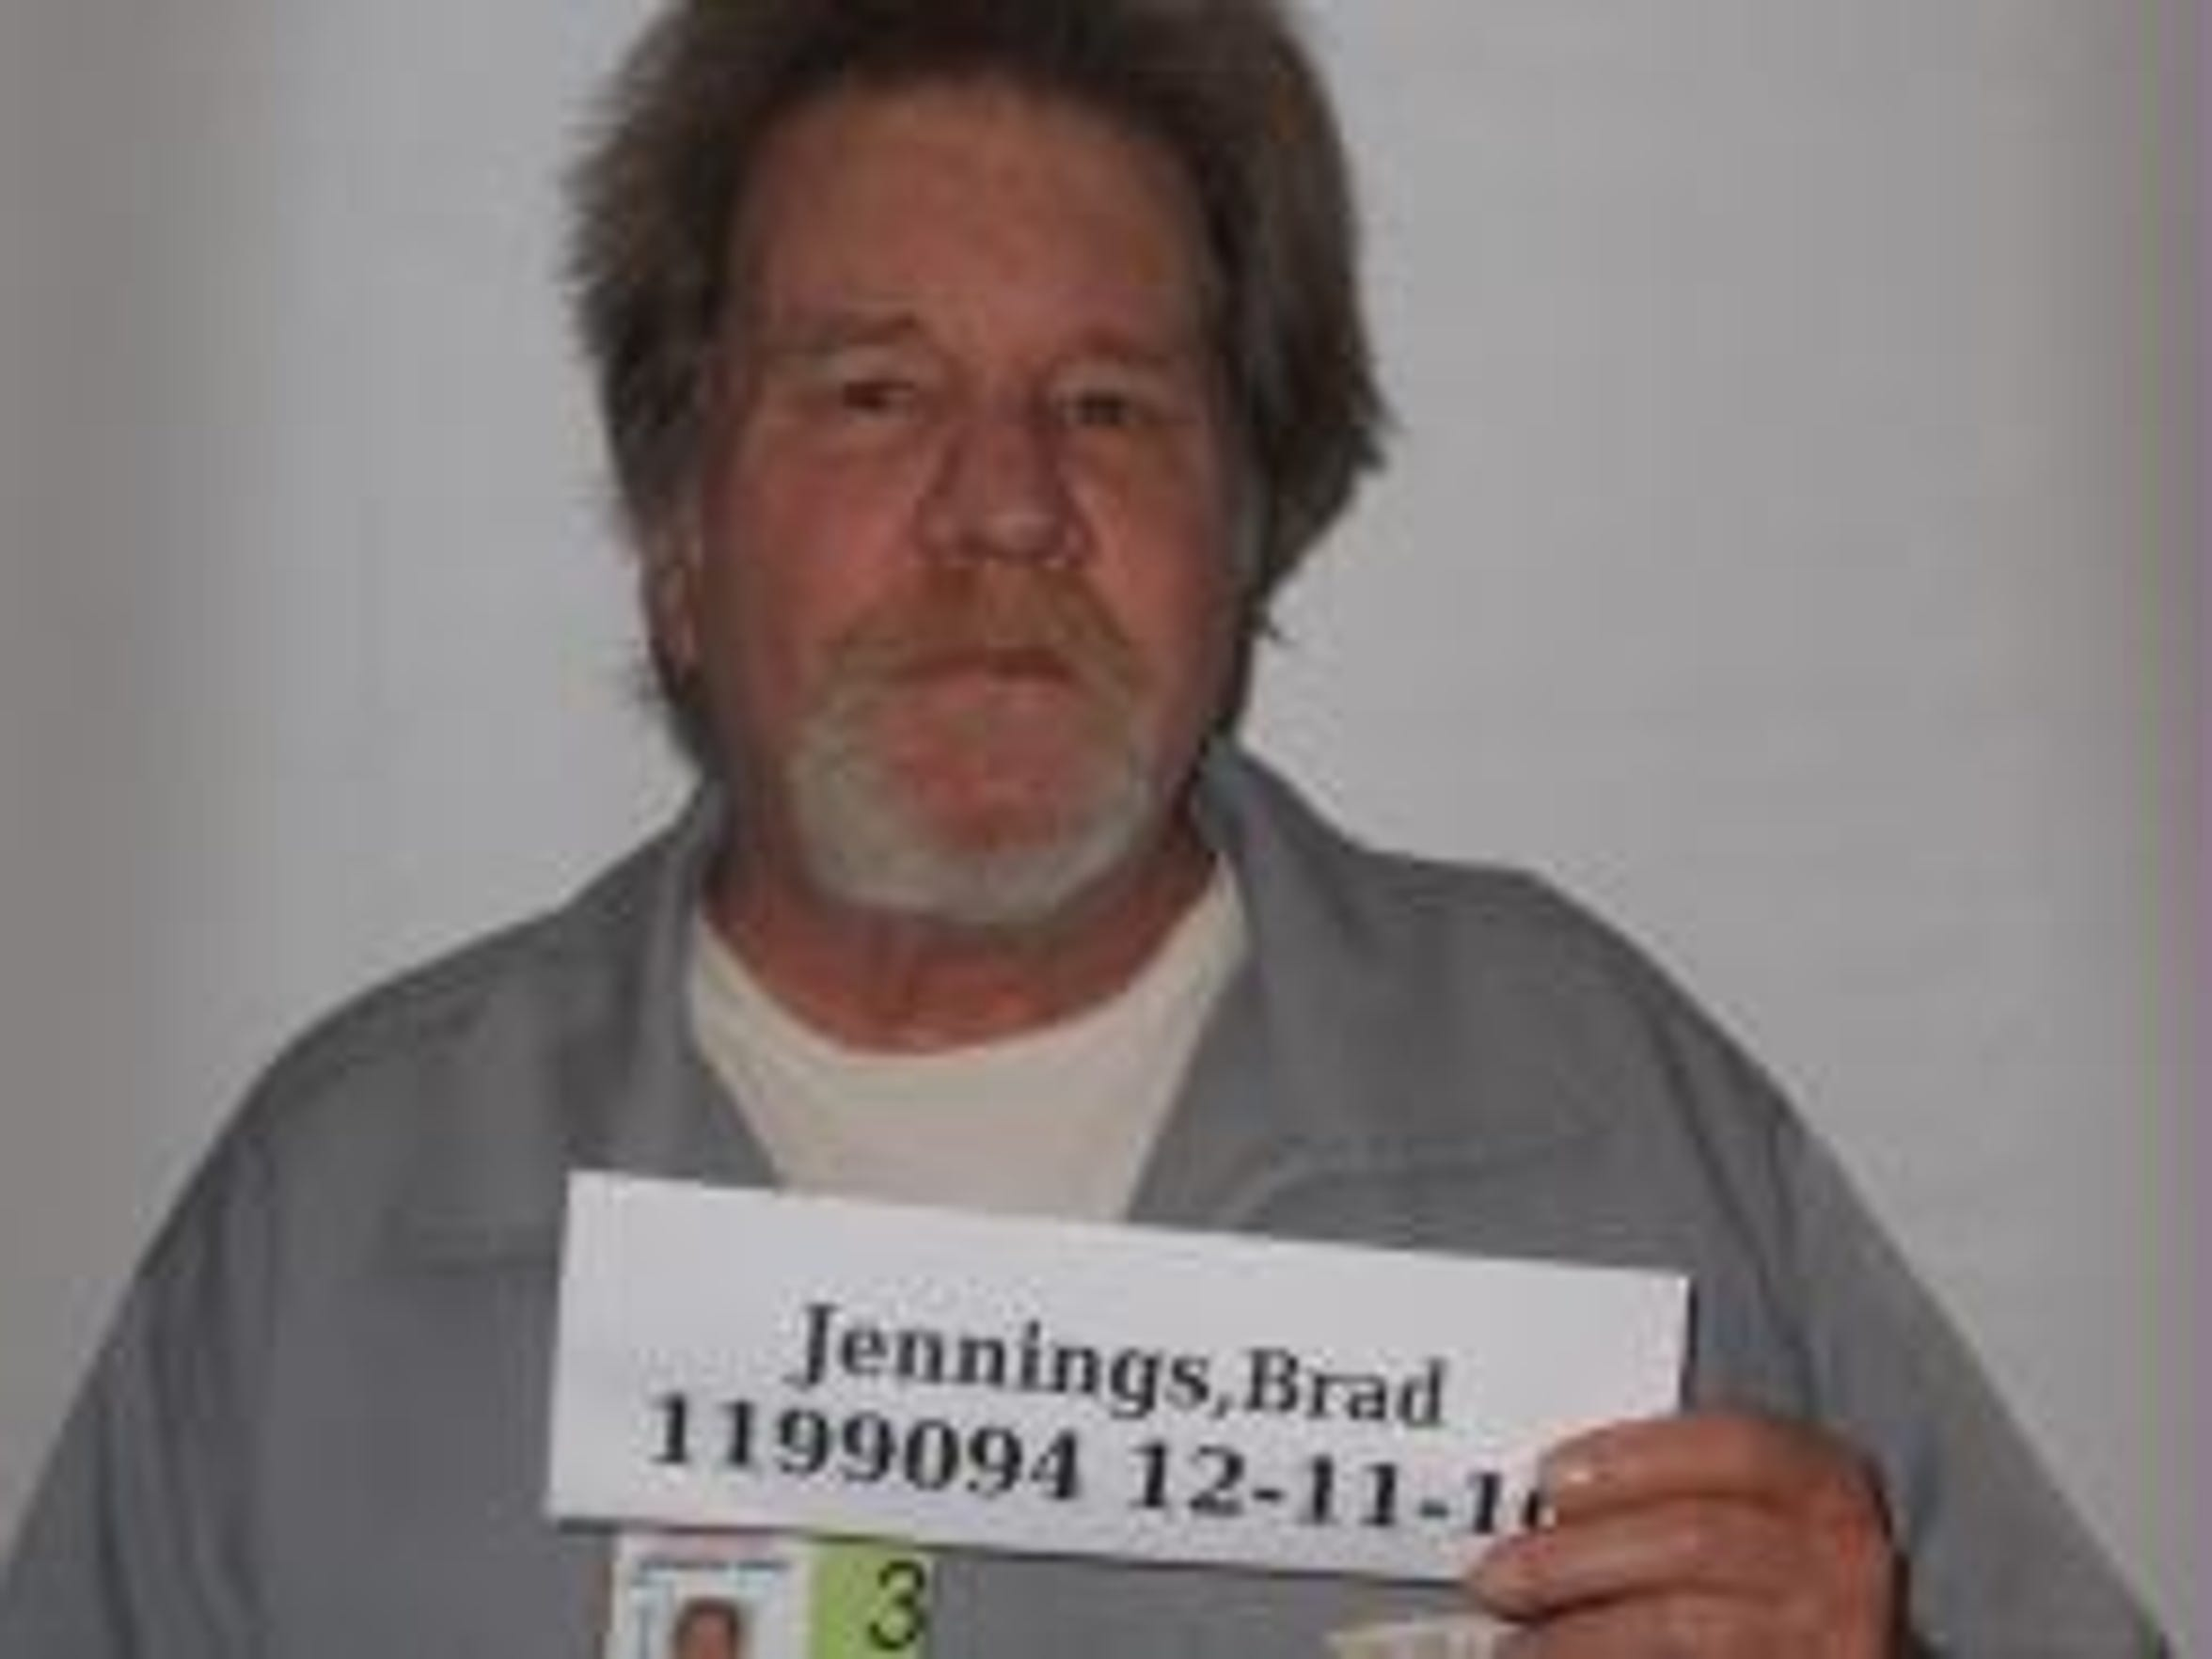 Brad Jennings was arrested in 2007 and has been in